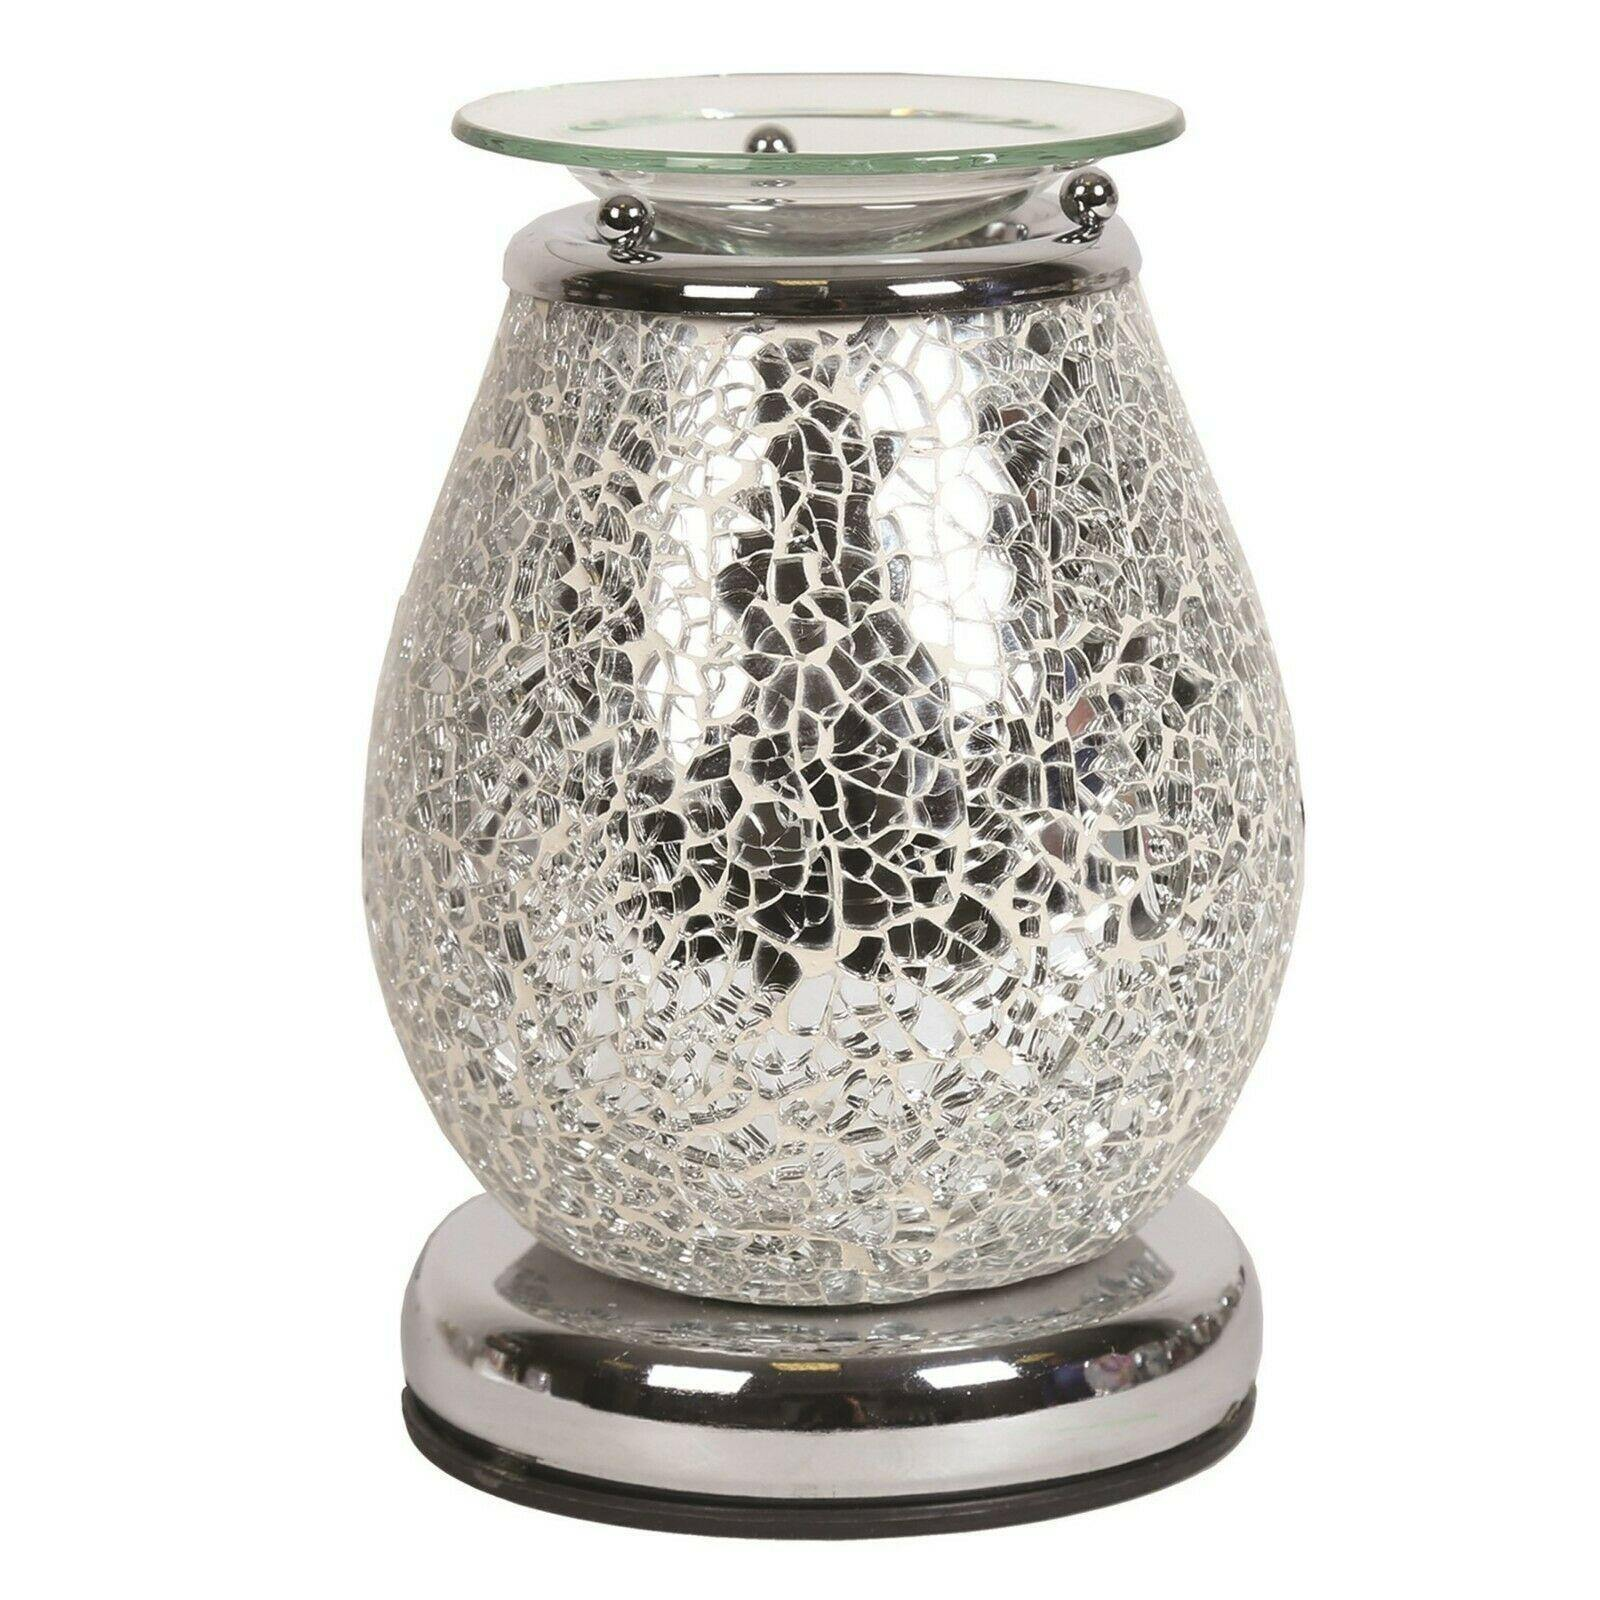 Aroma Accessories Jupiter Mosaic Touch Electric Wax Melt Warmer - TOSYS Candles and Gifts